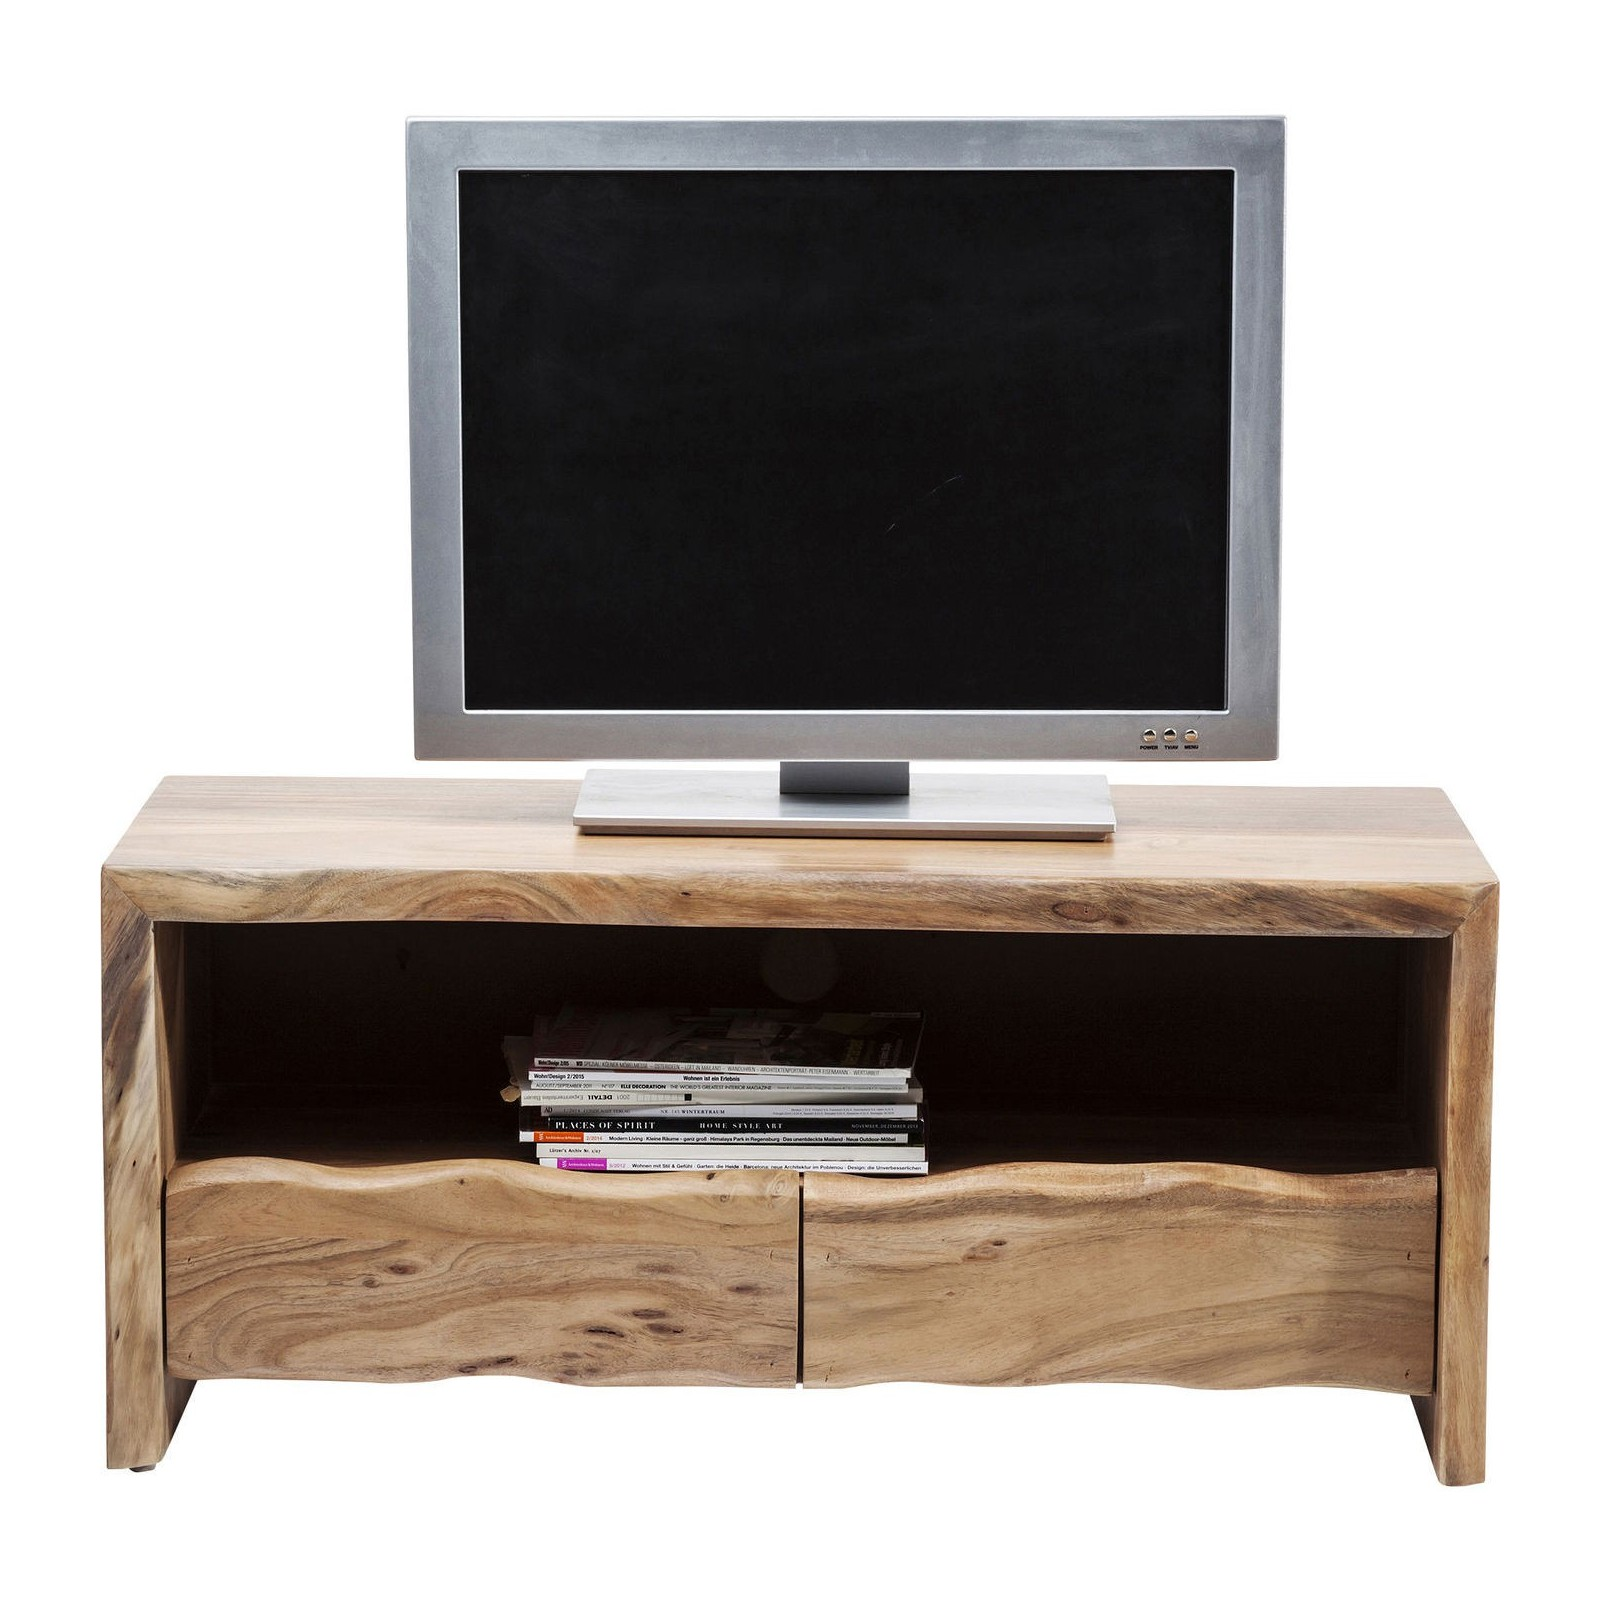 Meuble tv scandinave en bois pure nature kare design for Meuble tv 75 cm